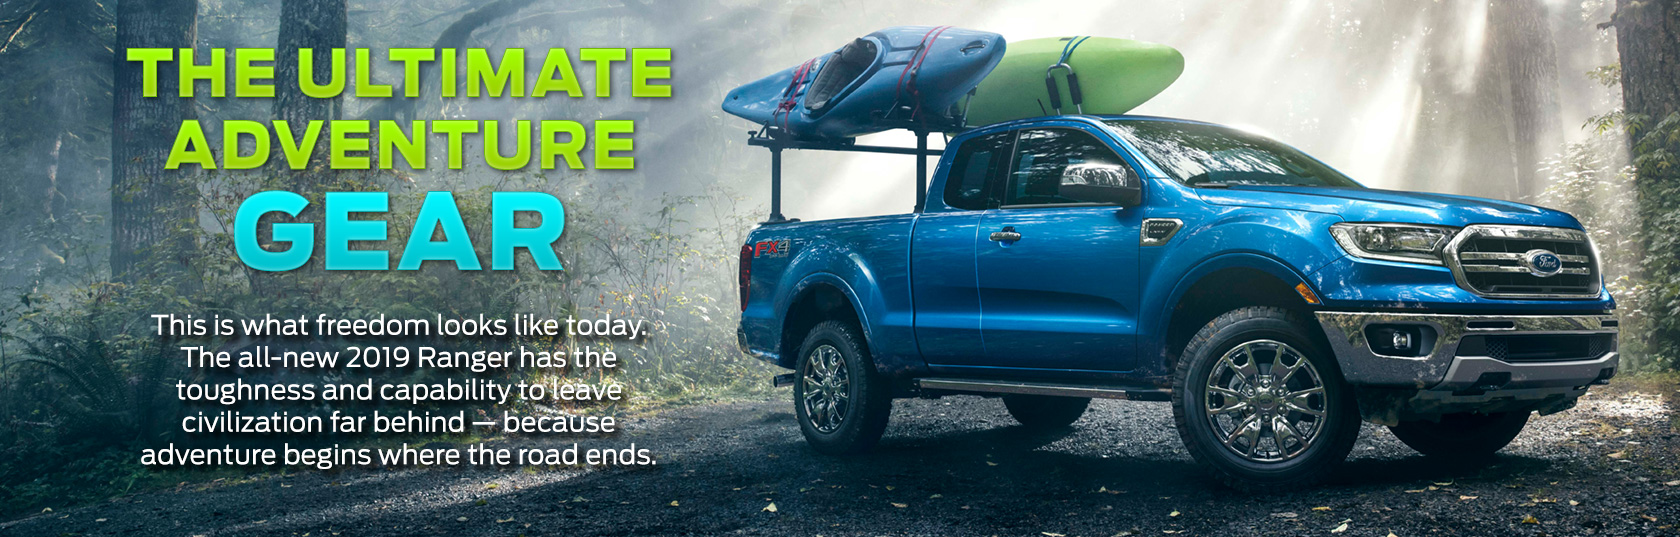 2019 Ford Ranger Is the Ultimate Adventure